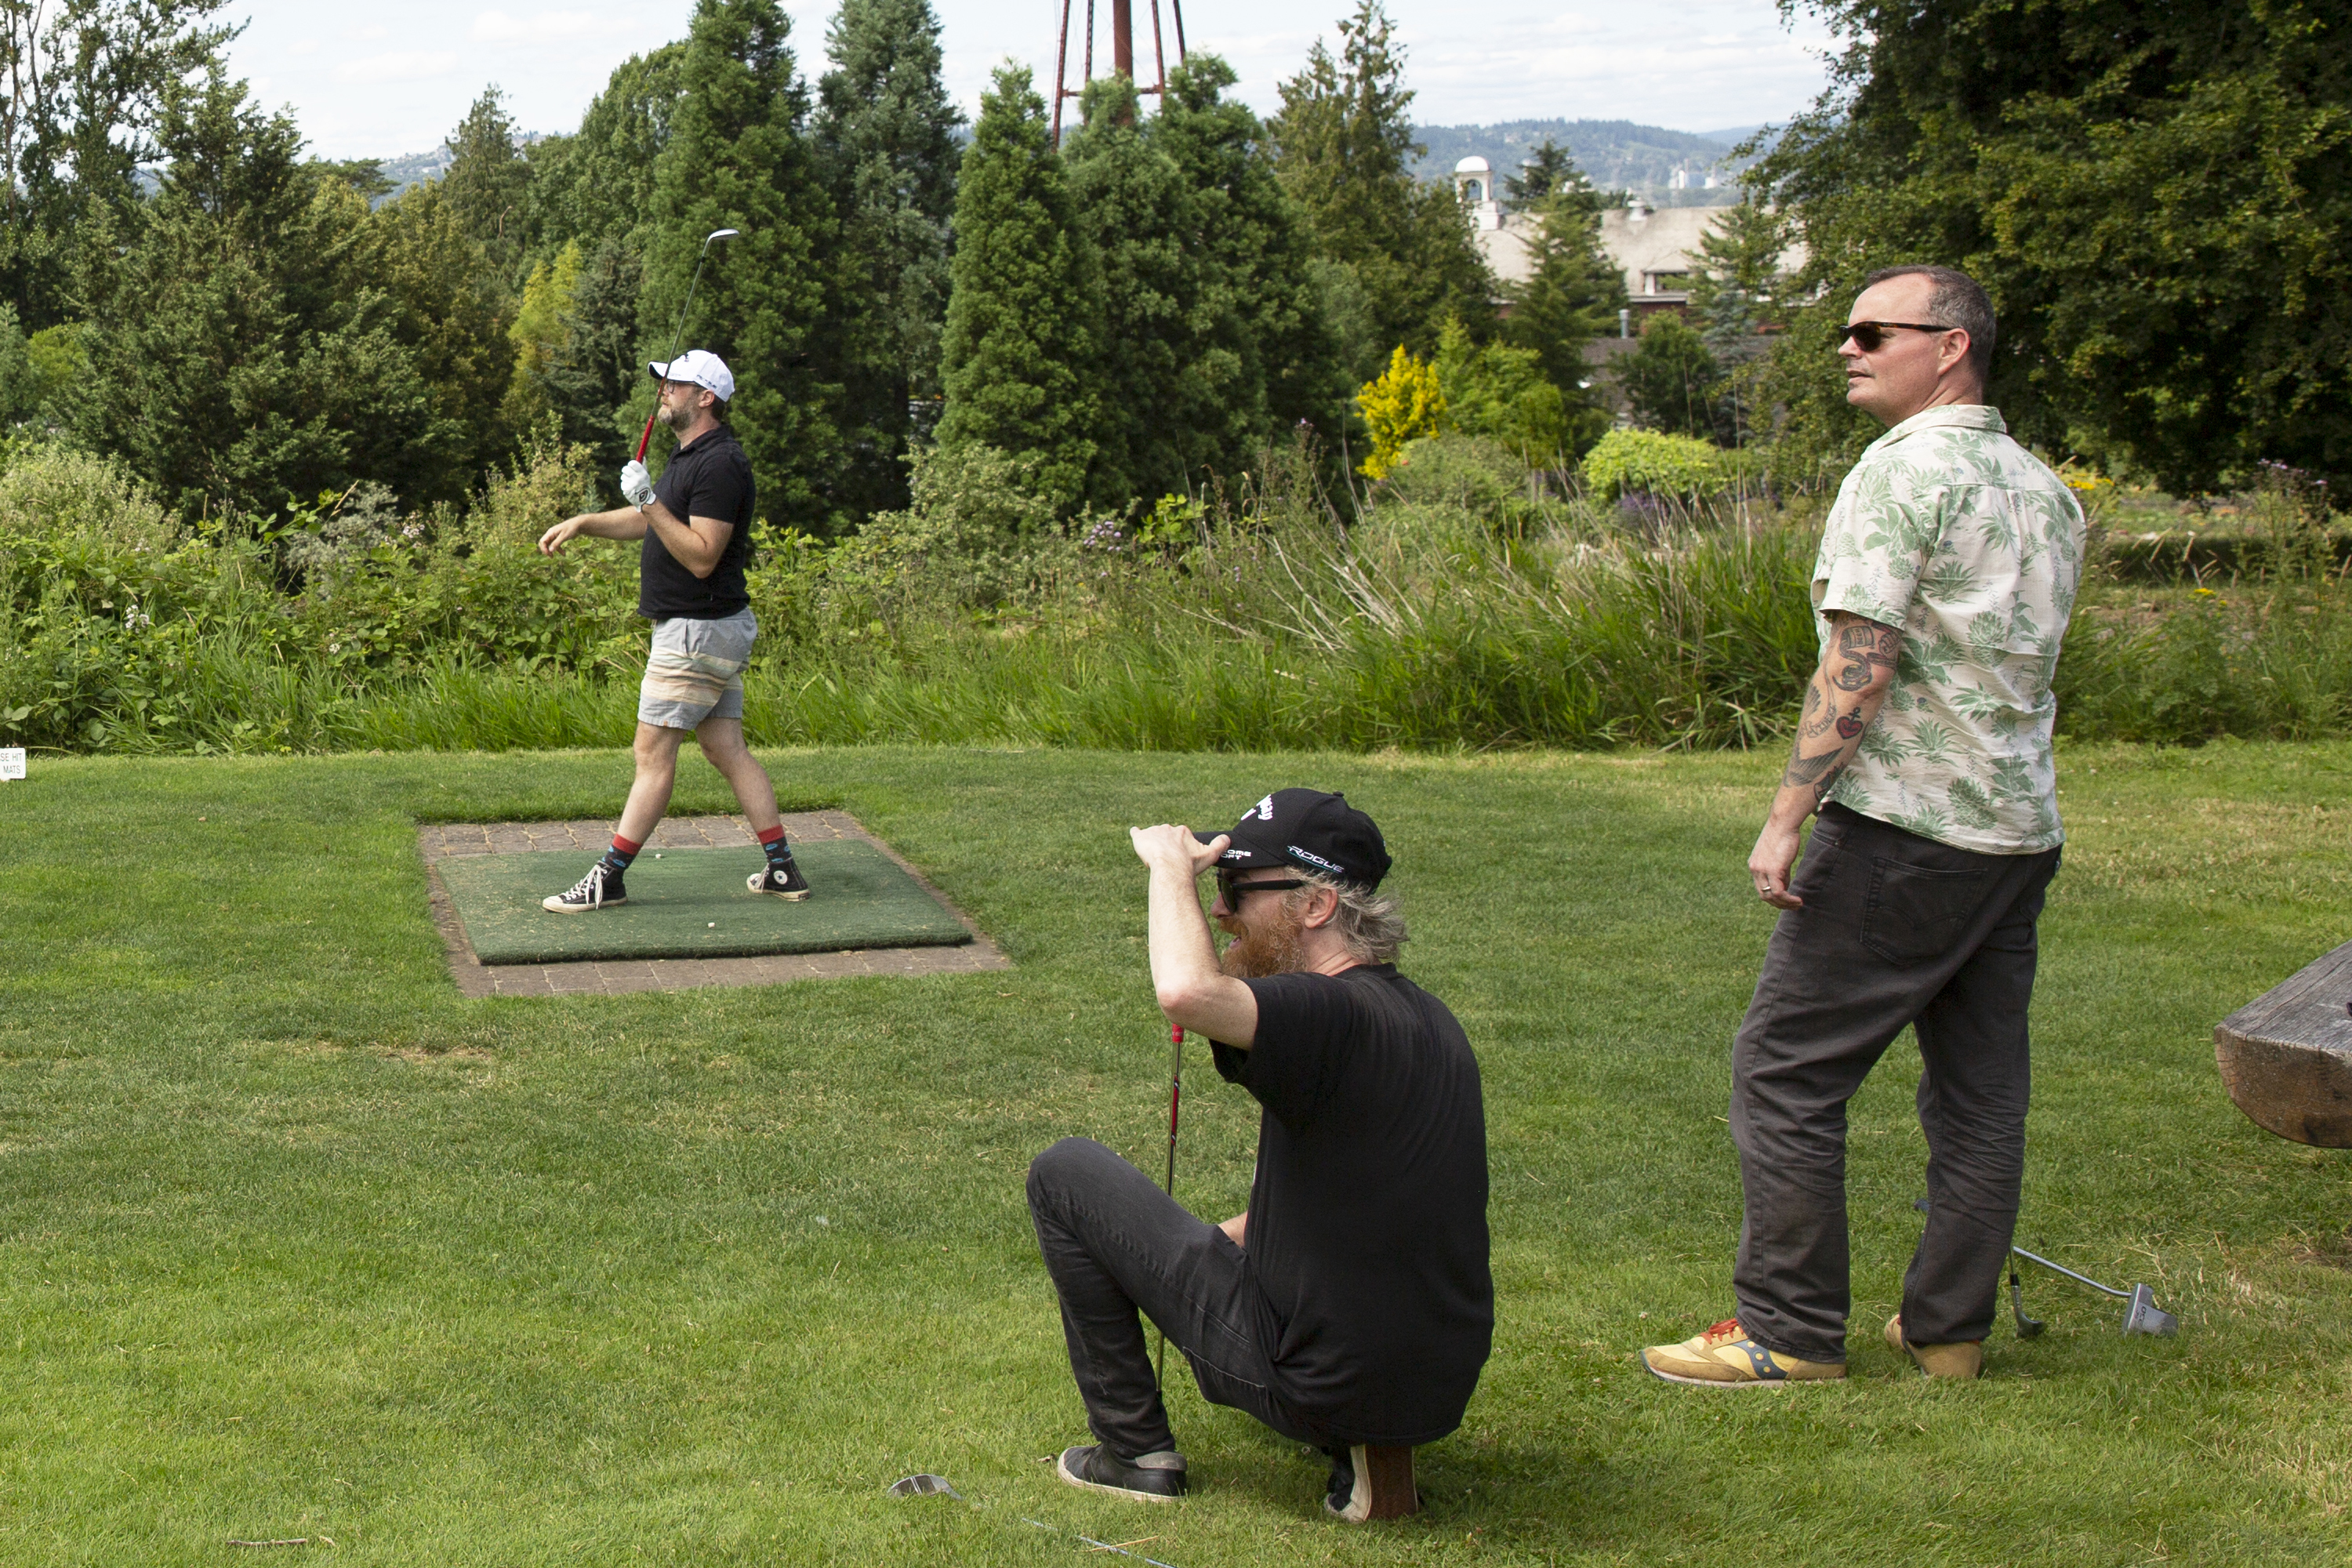 Red Fang eyeing down a tee shot